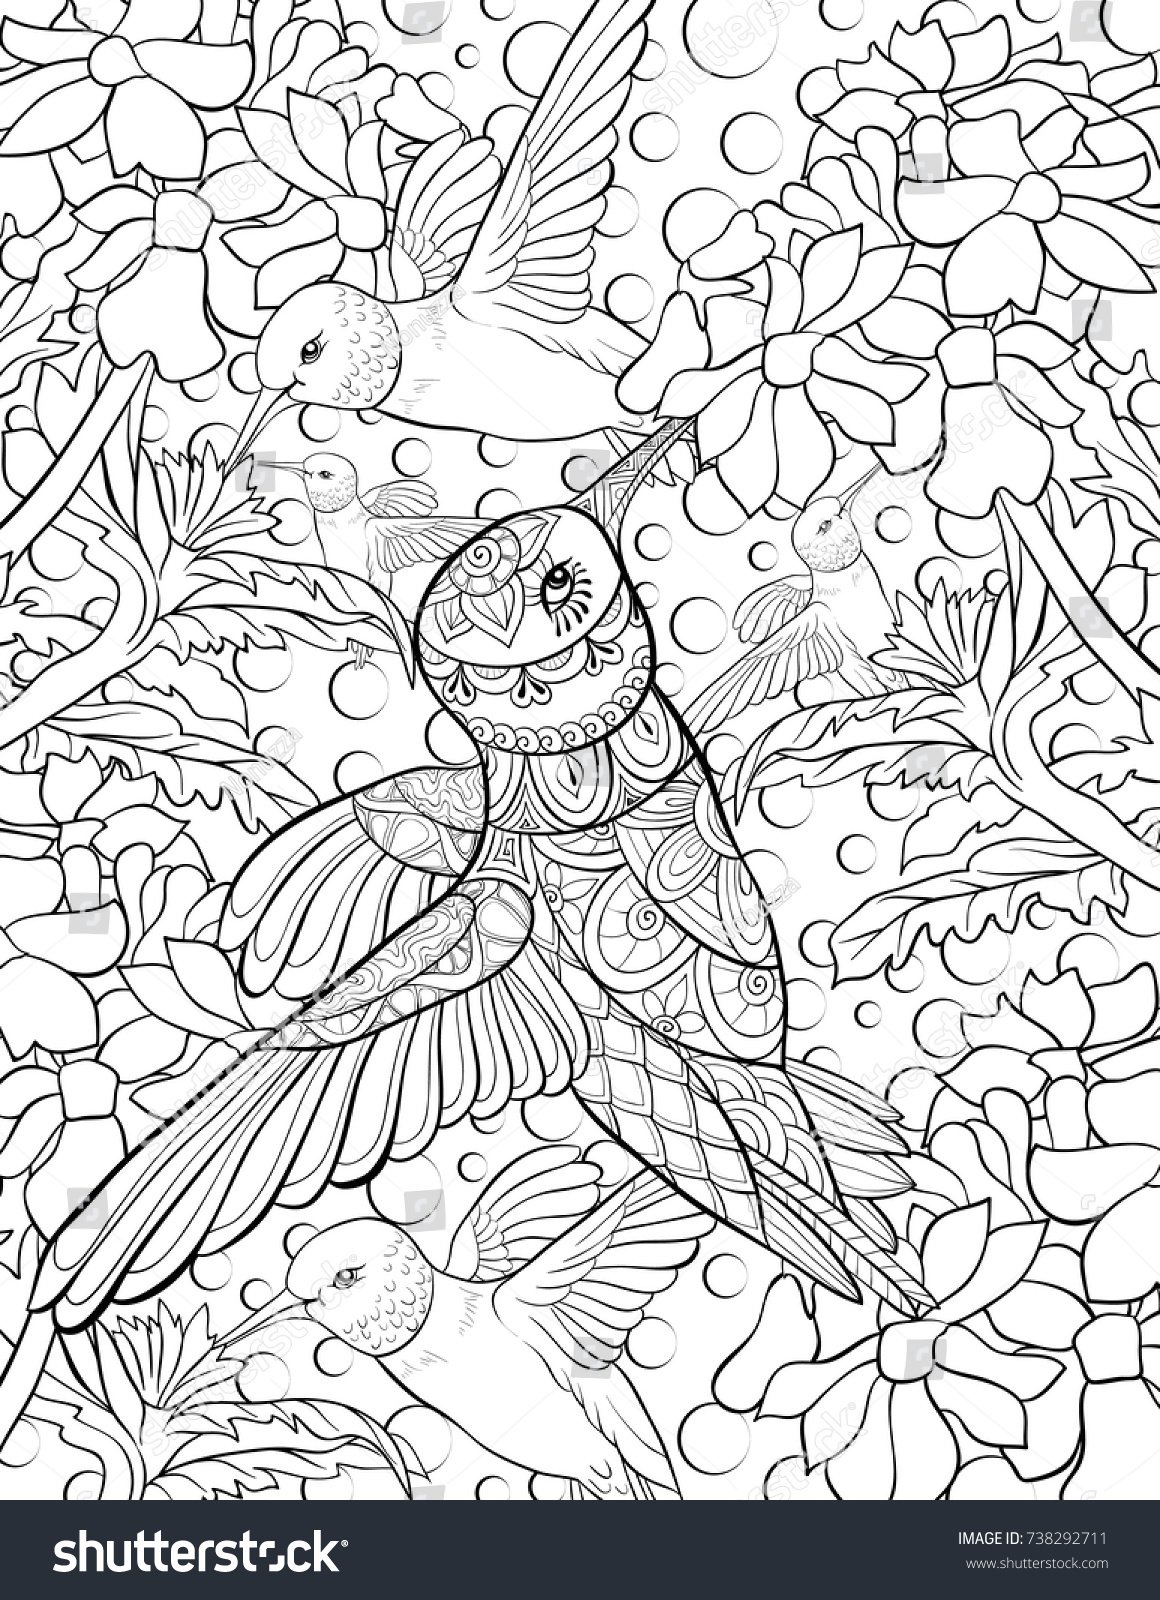 Adult coloring pagebook an hummingbird and flowers zen art style illustration